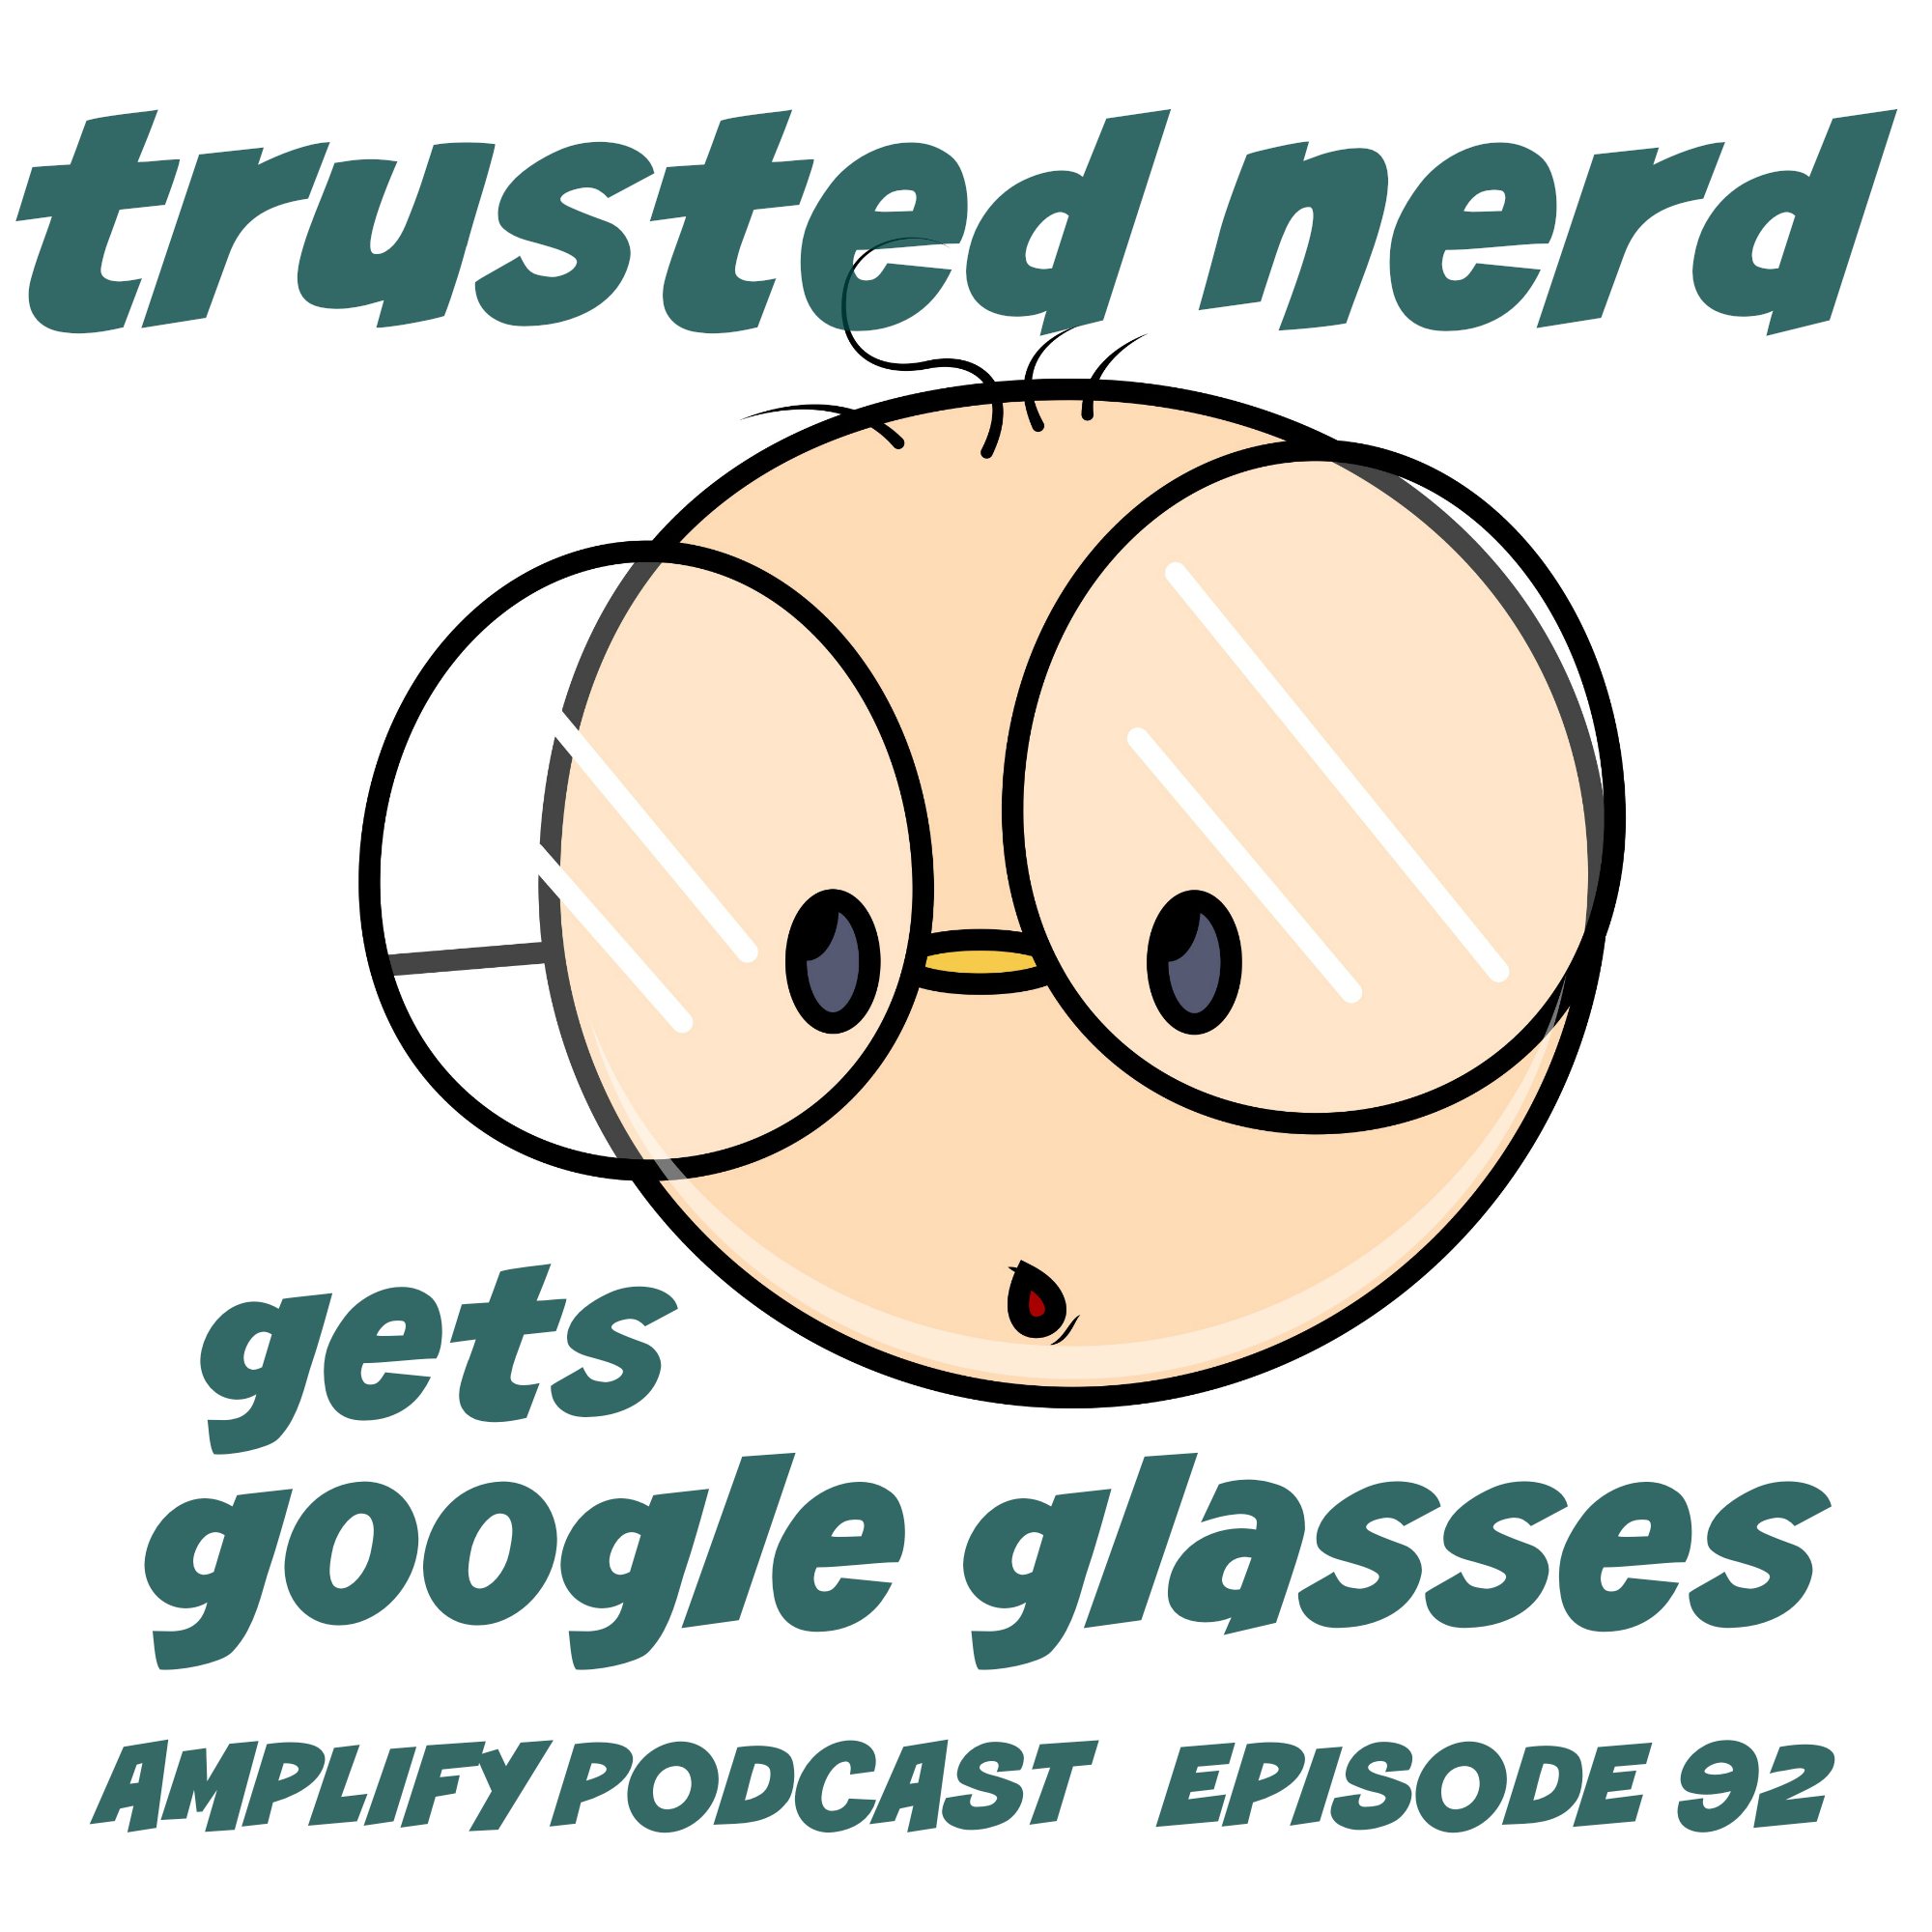 Amplify Podcast - Google Glasses